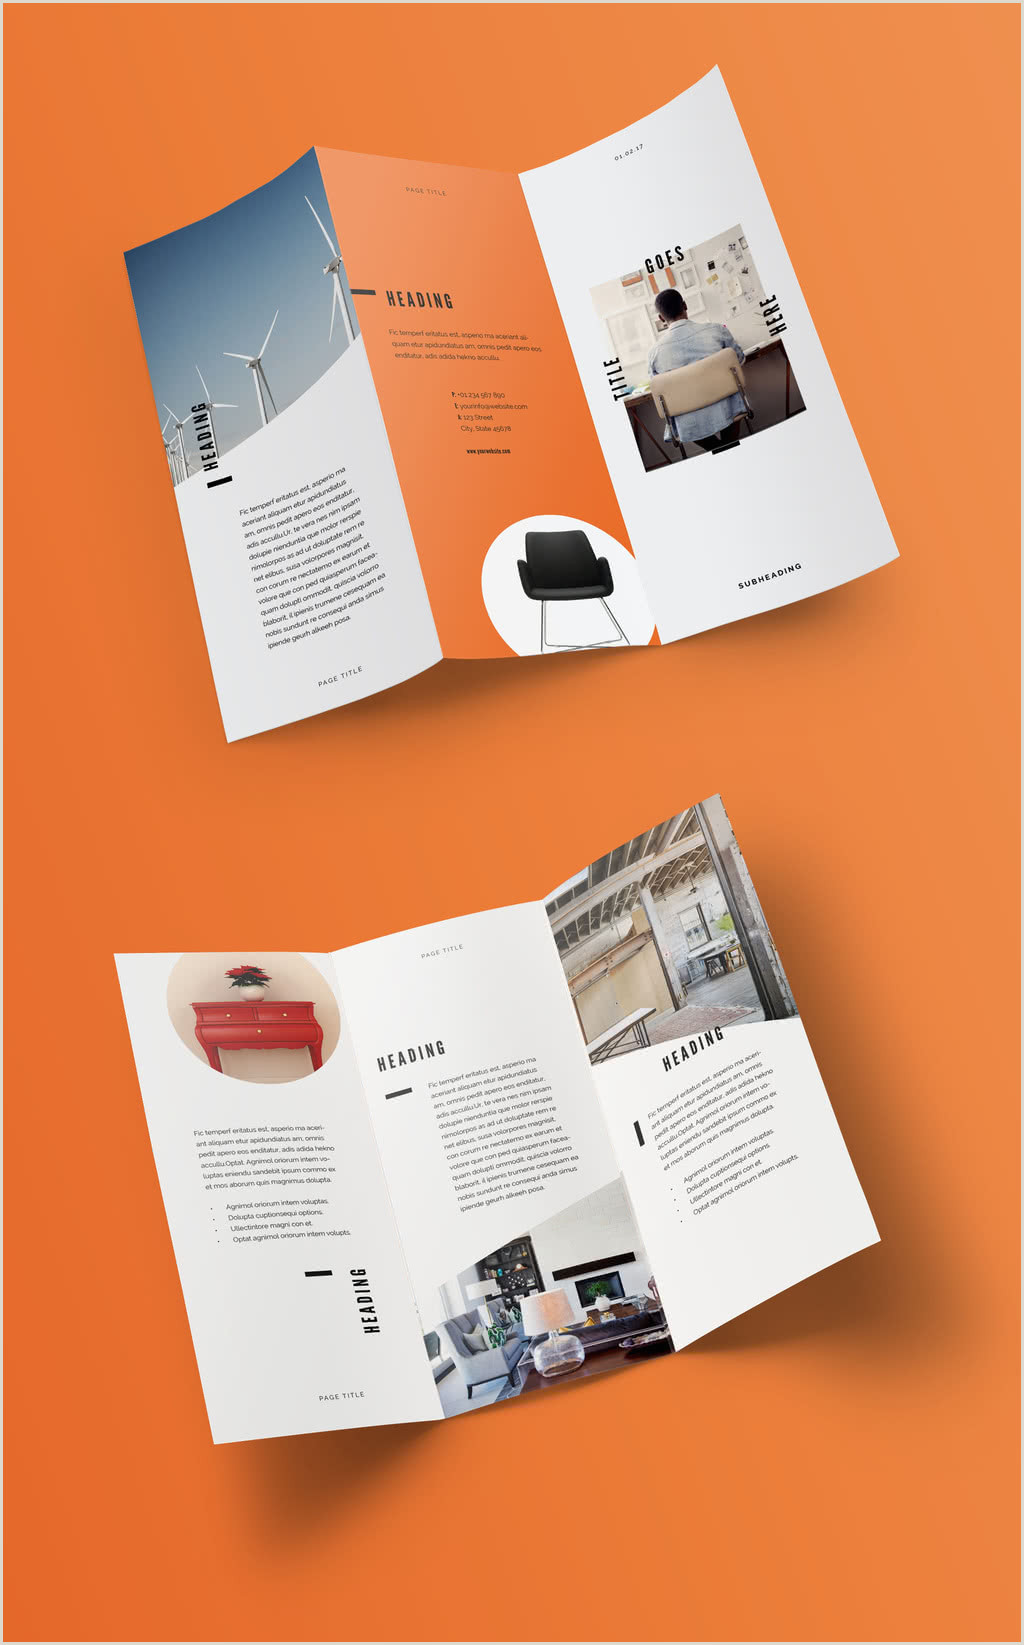 The Price is Right Template 75 Fresh Indesign Templates and where to Find More